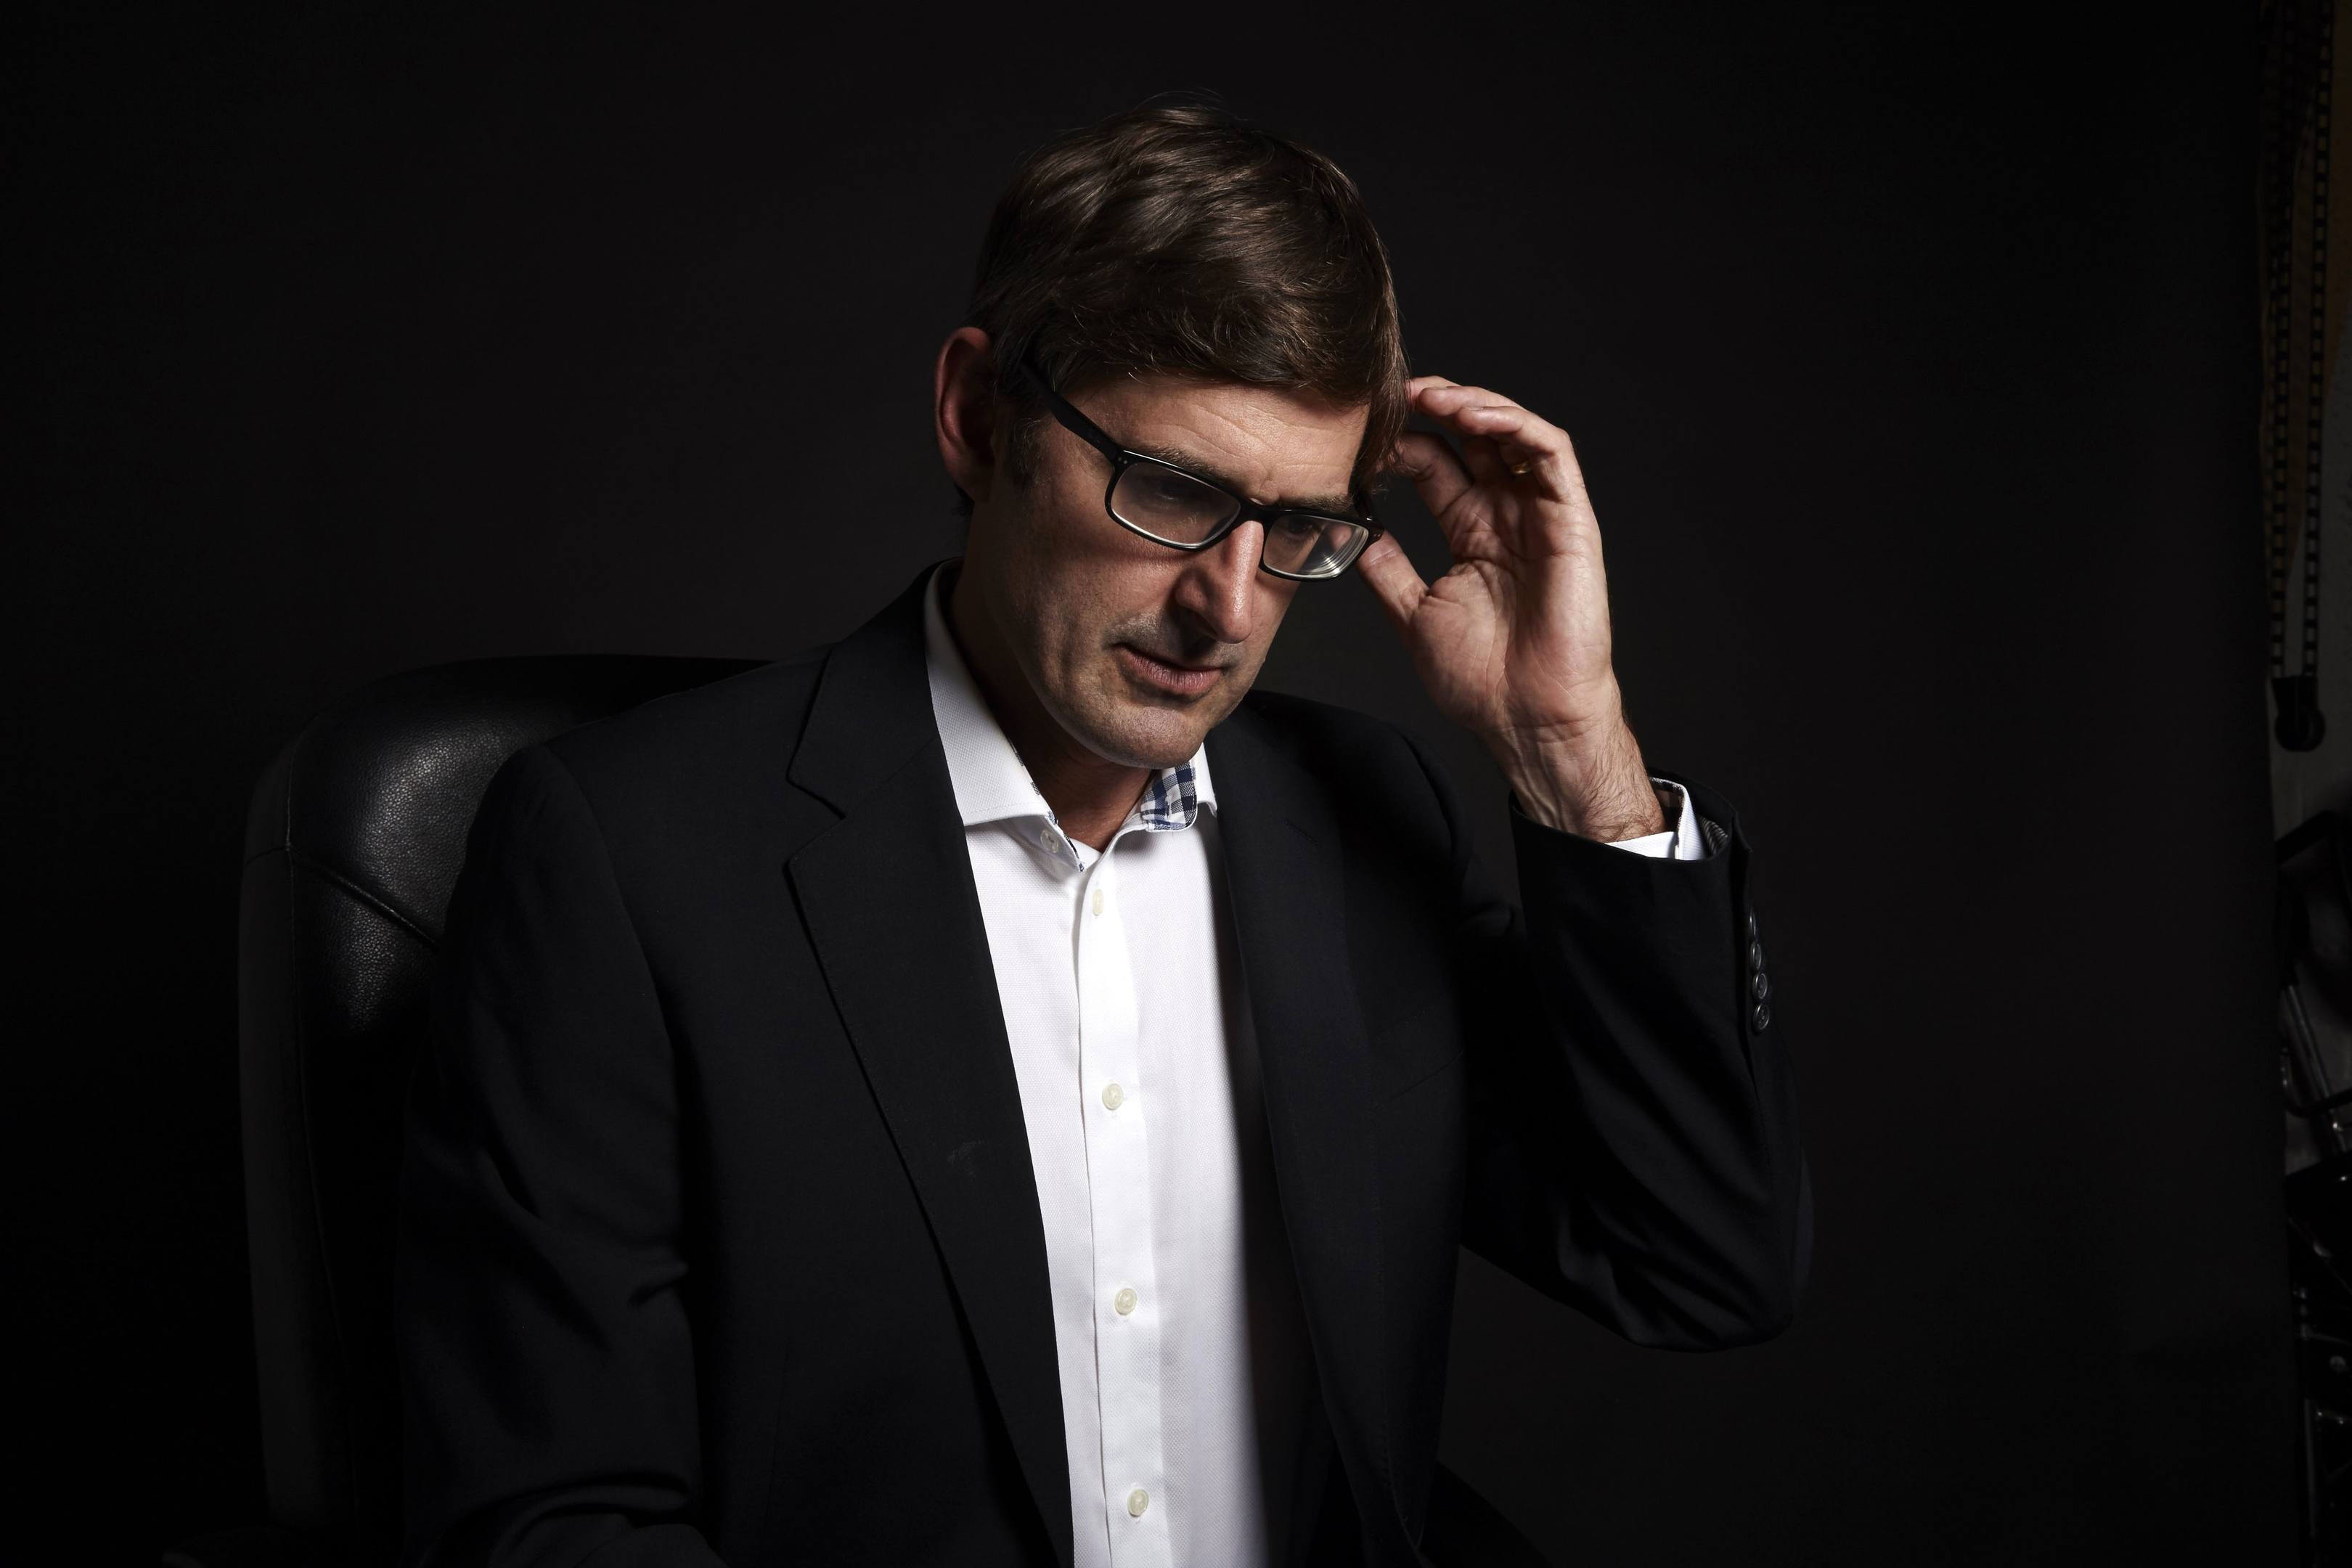 """Louis Theroux, who immersed himself into some of the most """"dysfunctional and disturbing aspects of American society"""" for three new documentaries airing later this year (BBC/PA Wire)"""